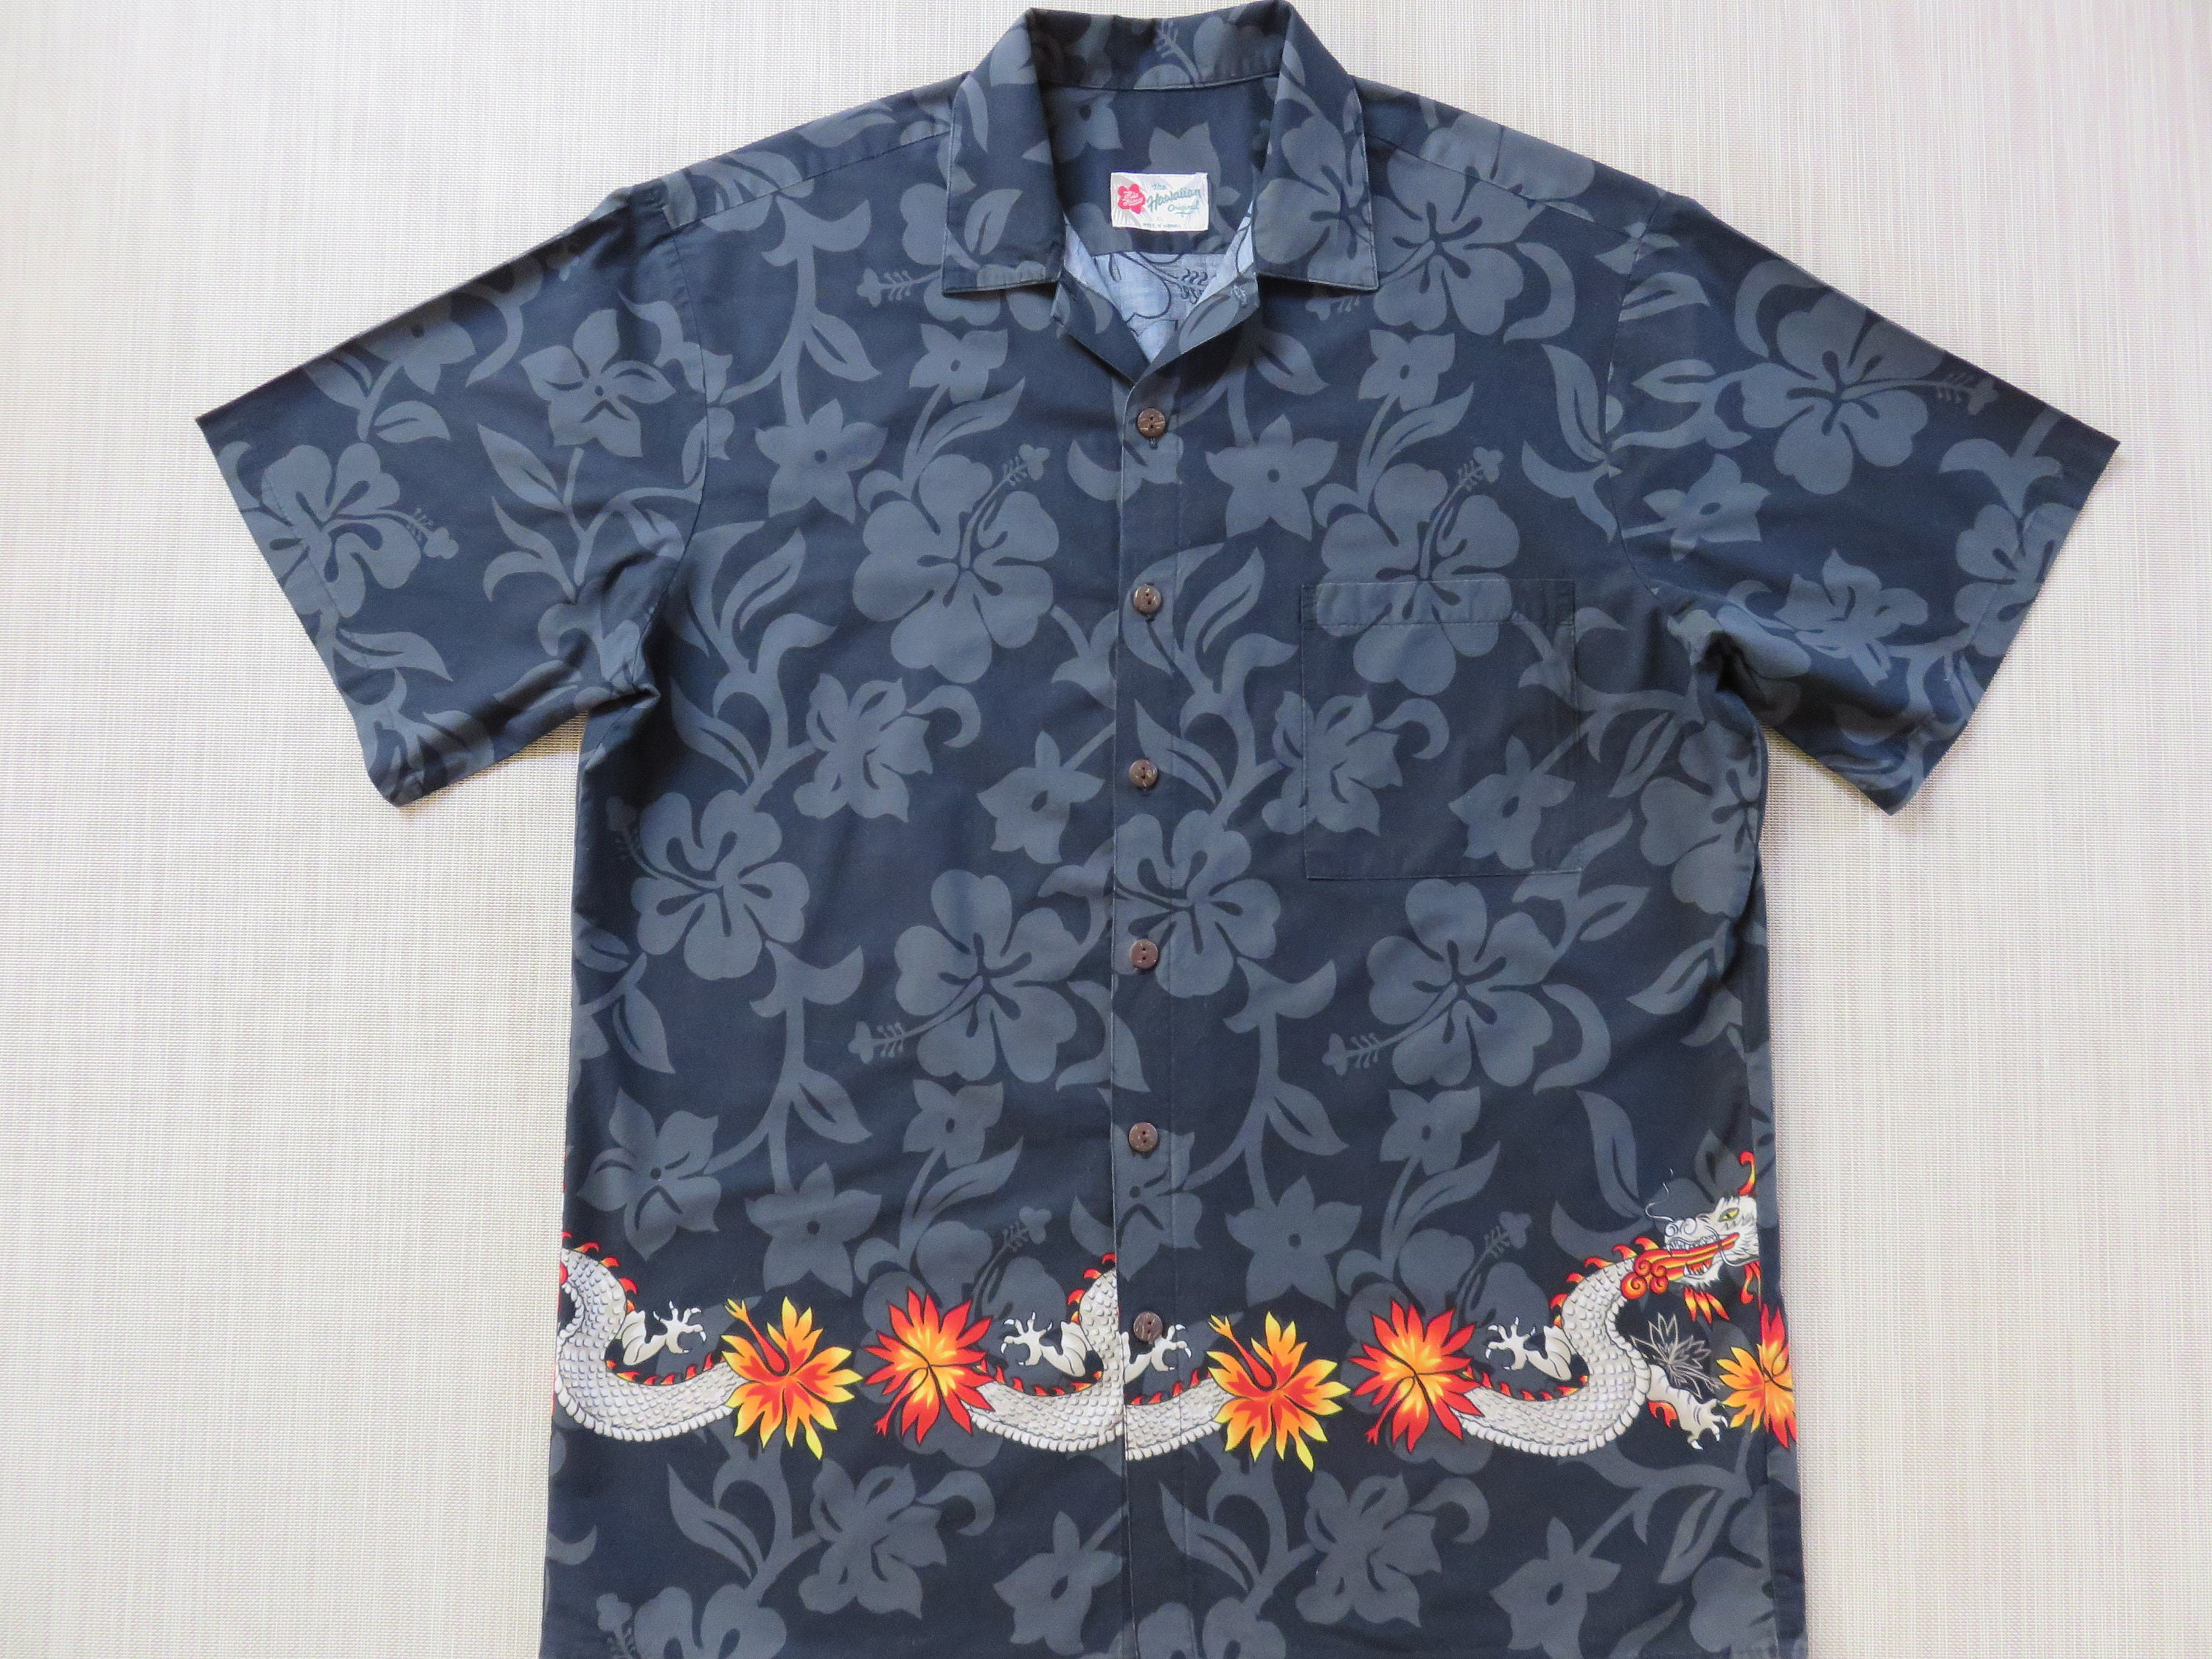 fa916a93b8 Hawaiian Shirt Men HILO HATTIE Black Aloha Shirt Hipster Flamin' Party  Dragon Motorcycle Rider 100% Cotton Camp - XL- Oahu Lew's Shirt Shack